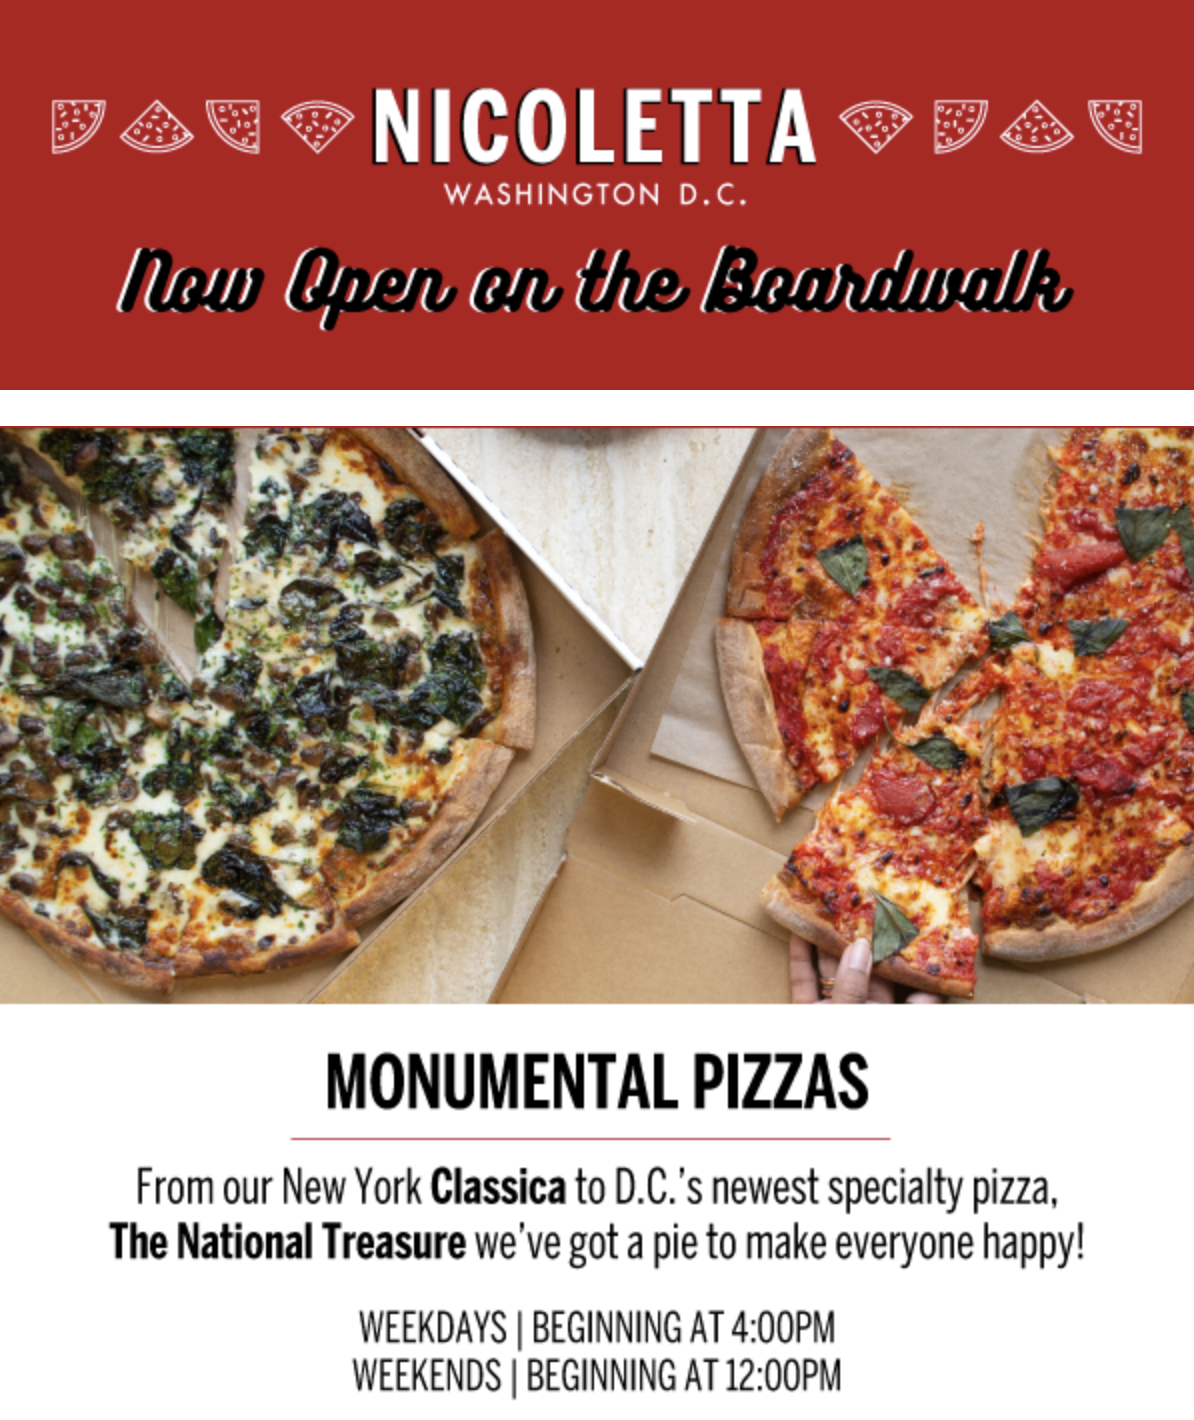 Nicoletta offers pizzas from the New York Classica to DC's newest specialty pizza, The National Treasure